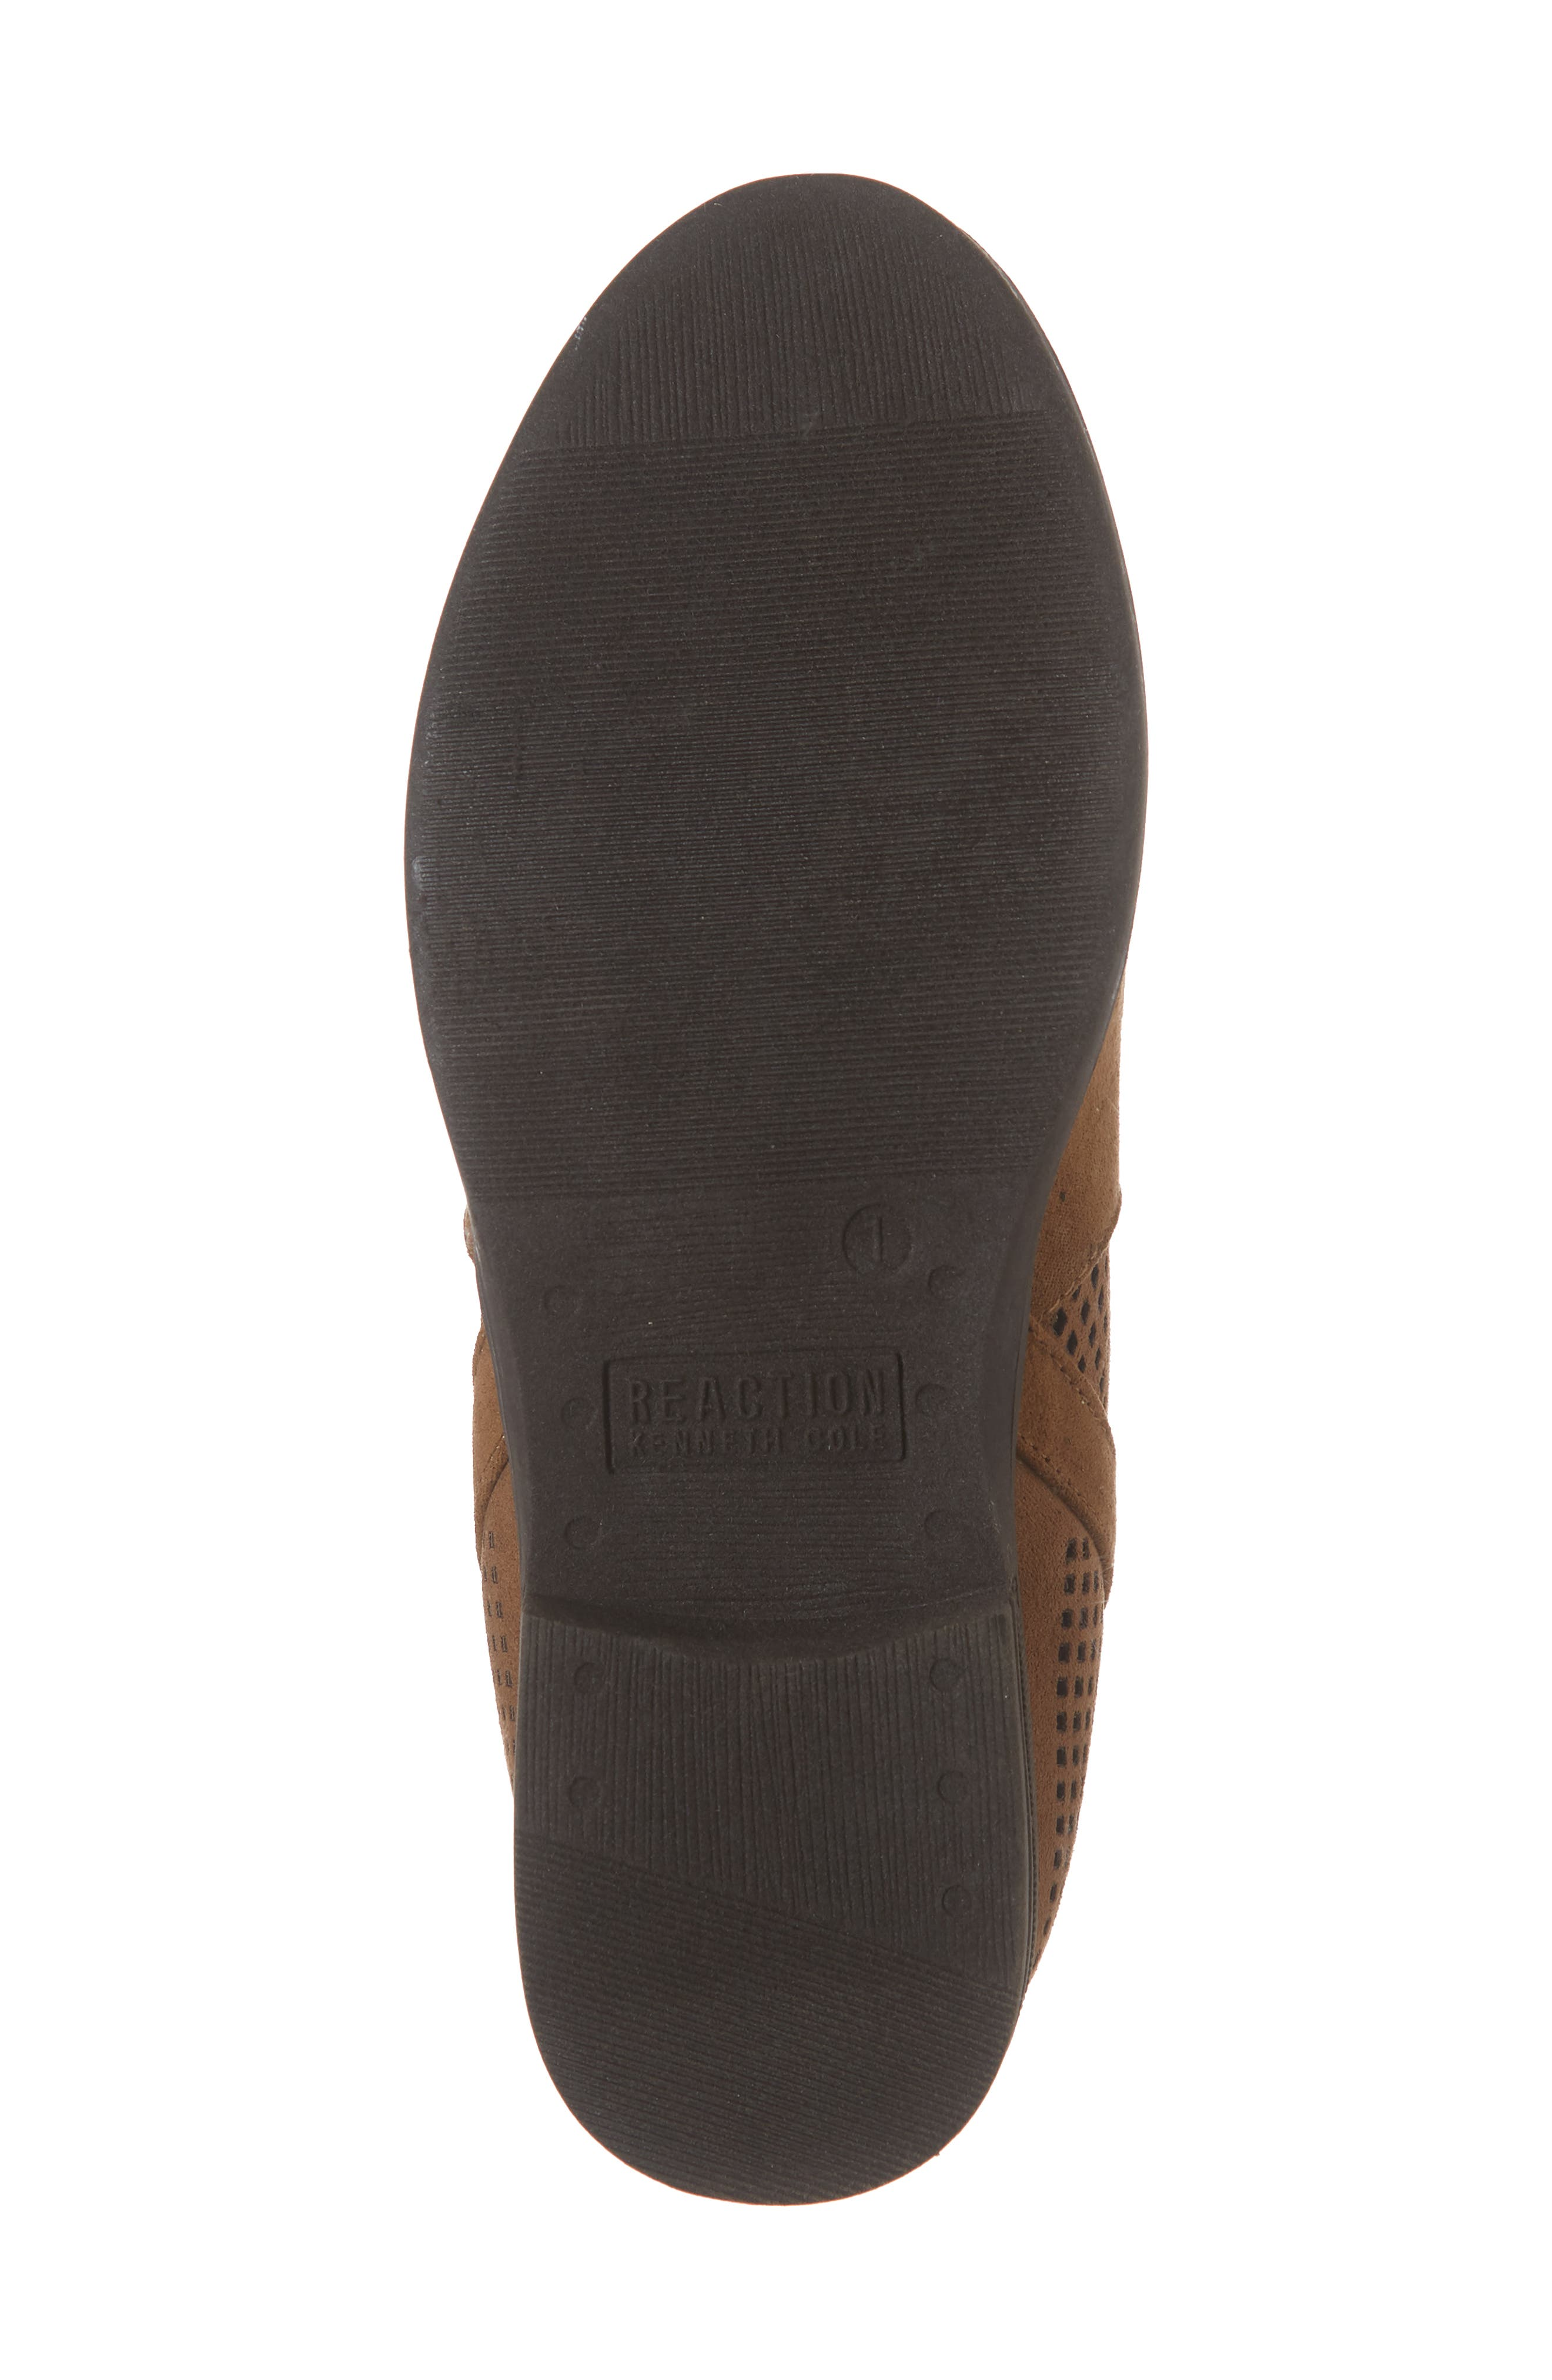 Wild Westy Perforated Bootie,                             Alternate thumbnail 6, color,                             206